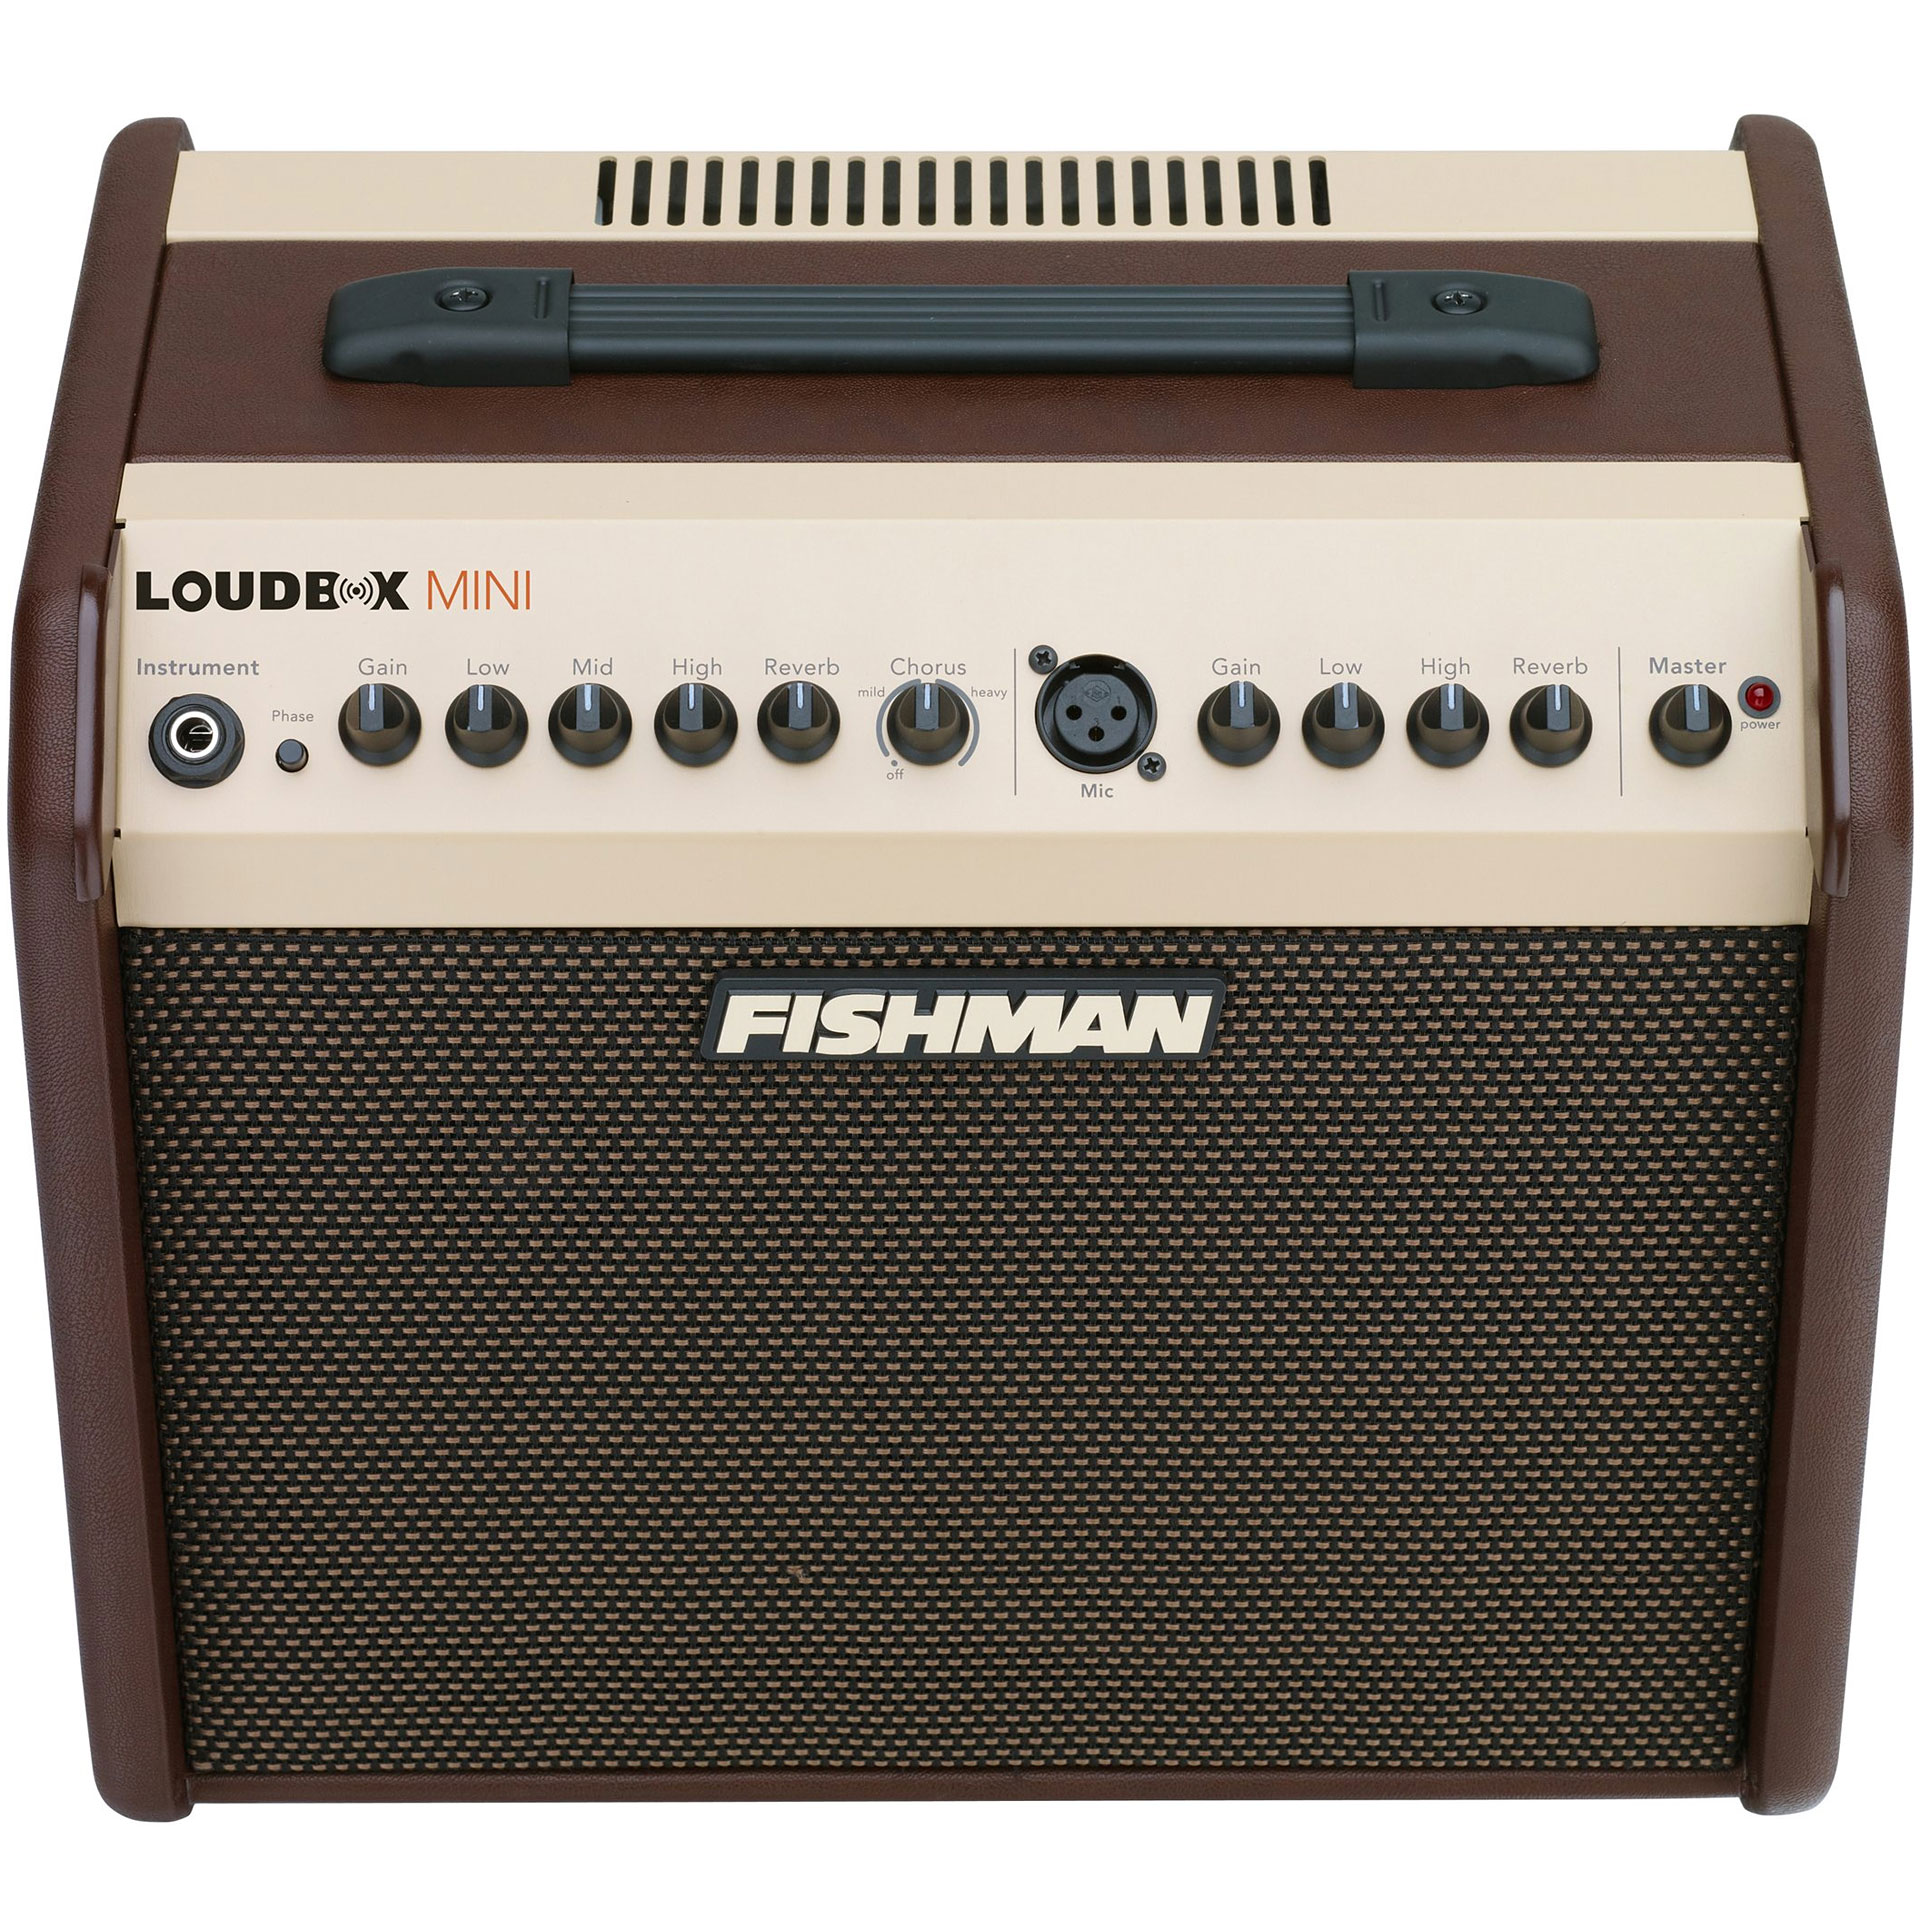 fishman_loudbox_mini_01xxl__1521567628_450